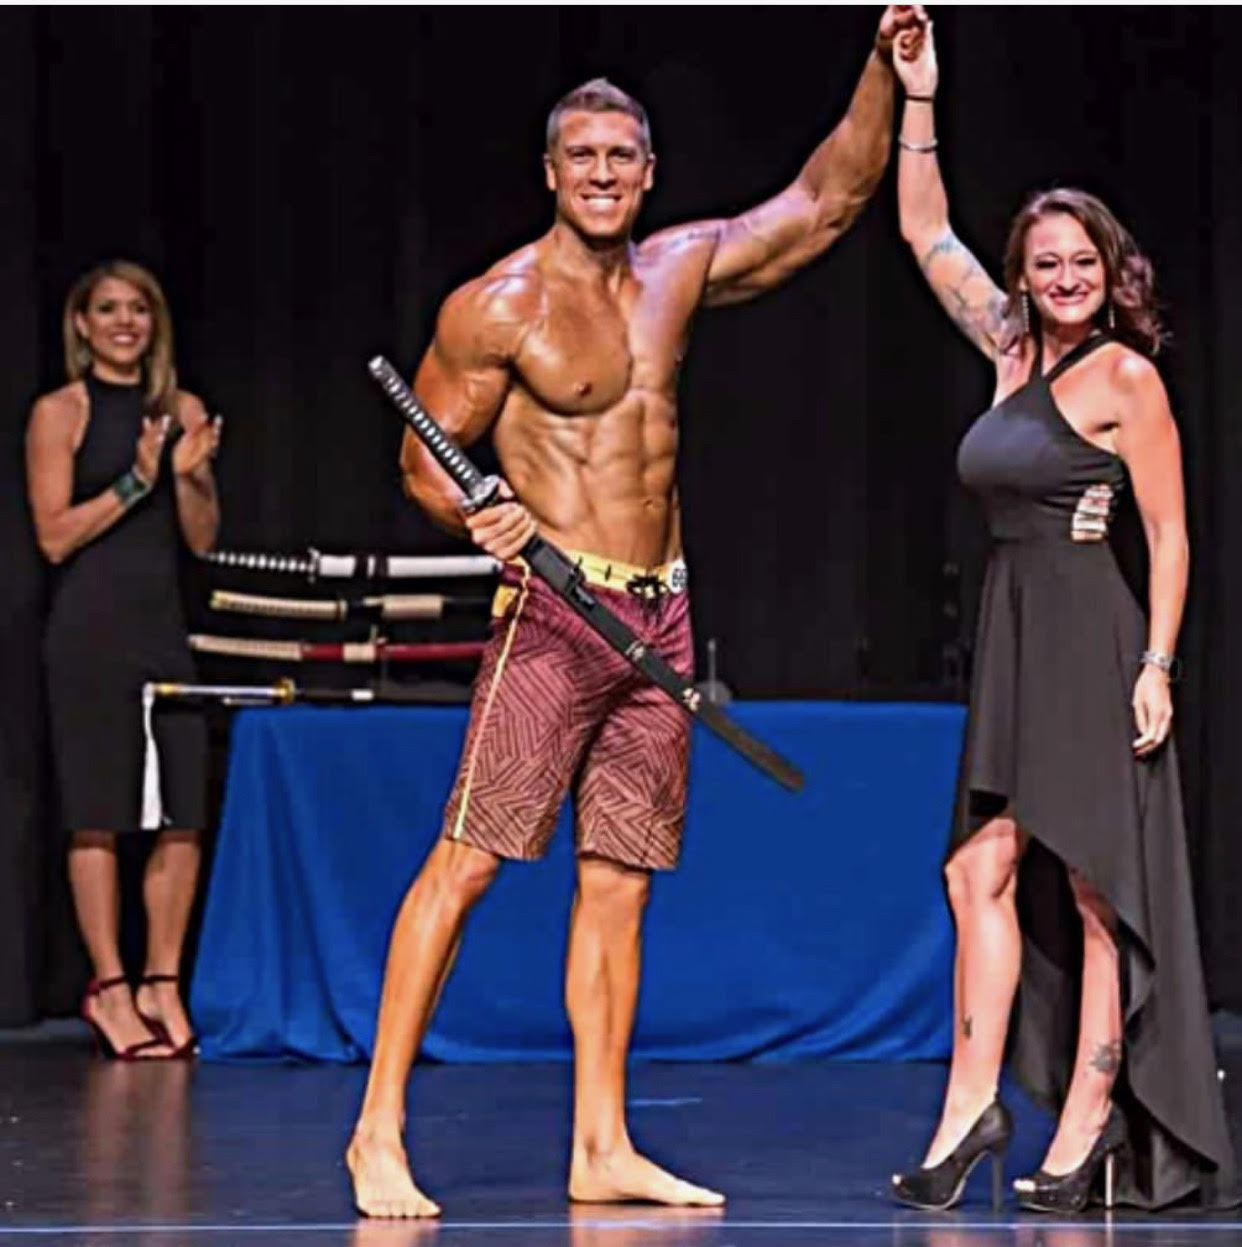 Josh wins his first natural Pro show!